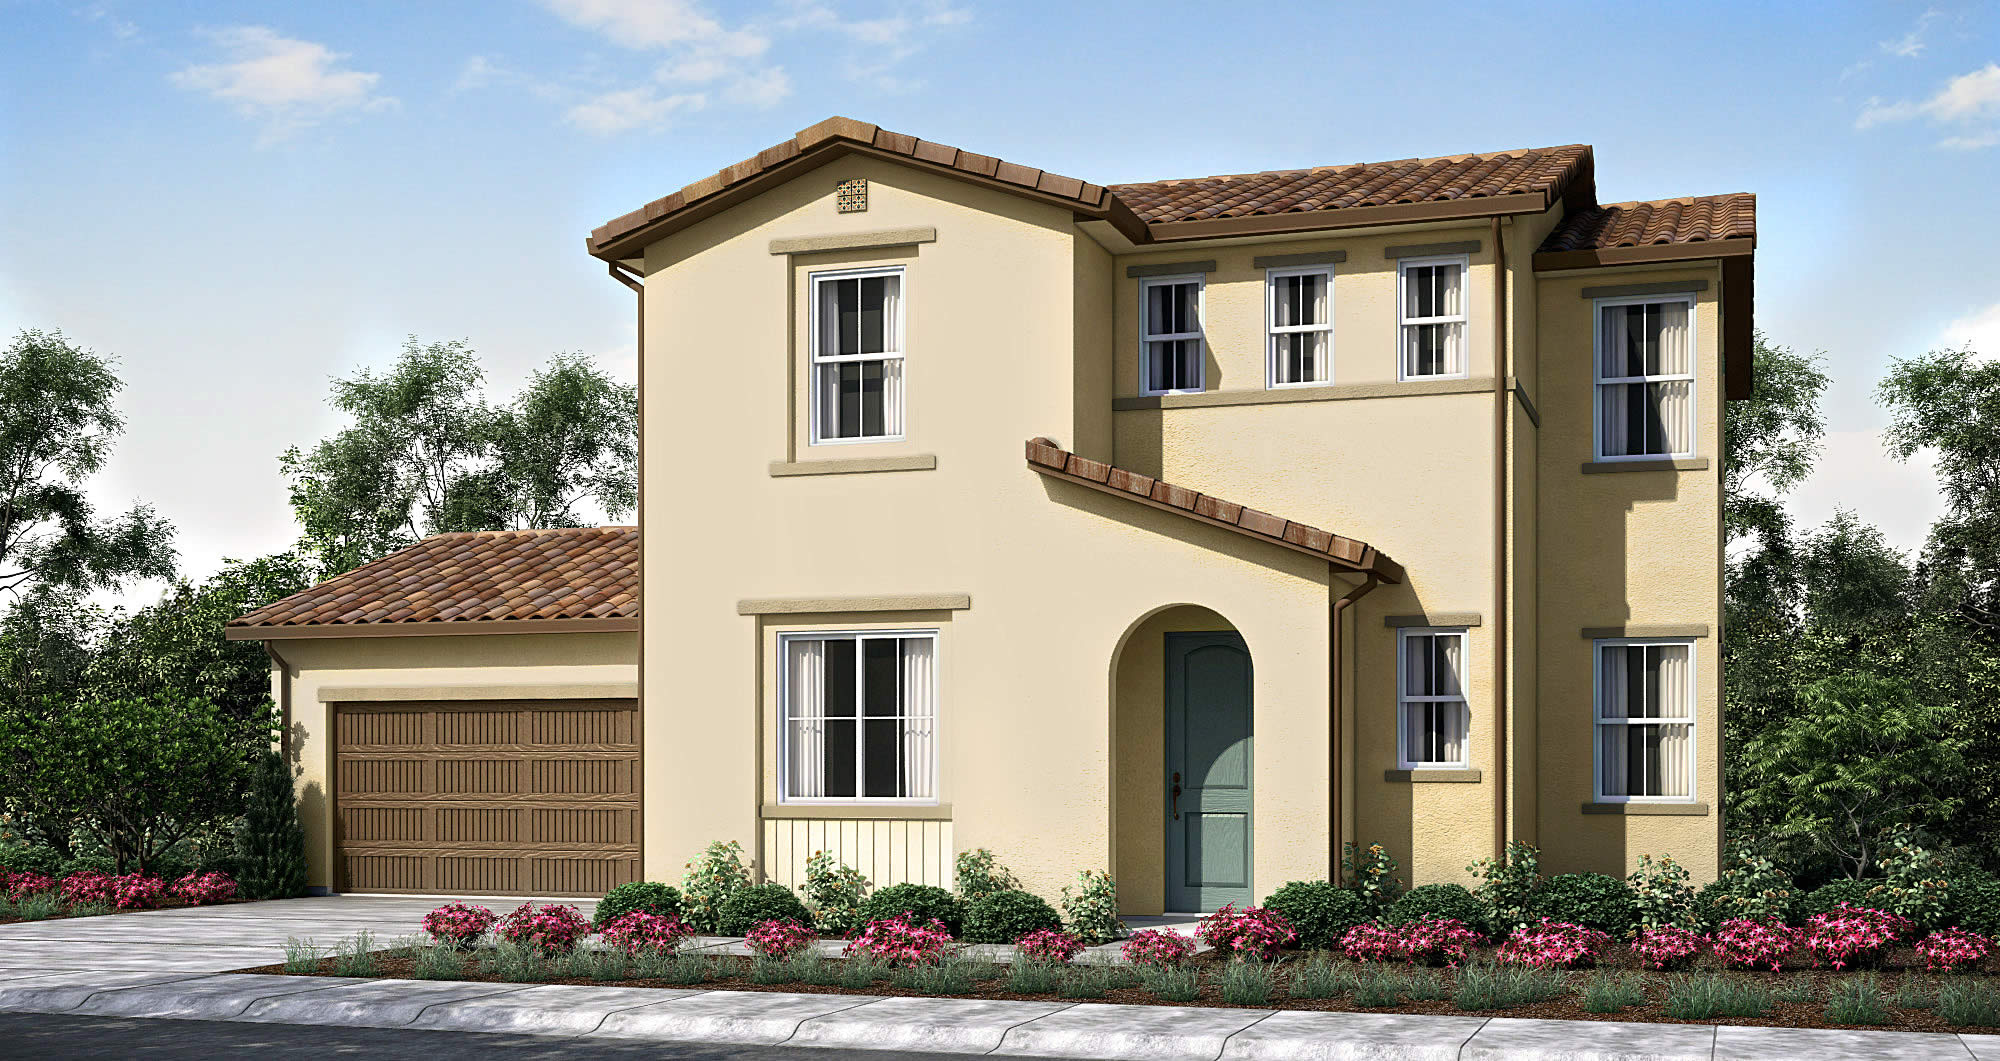 New Homes for Sale in Vacaville CA